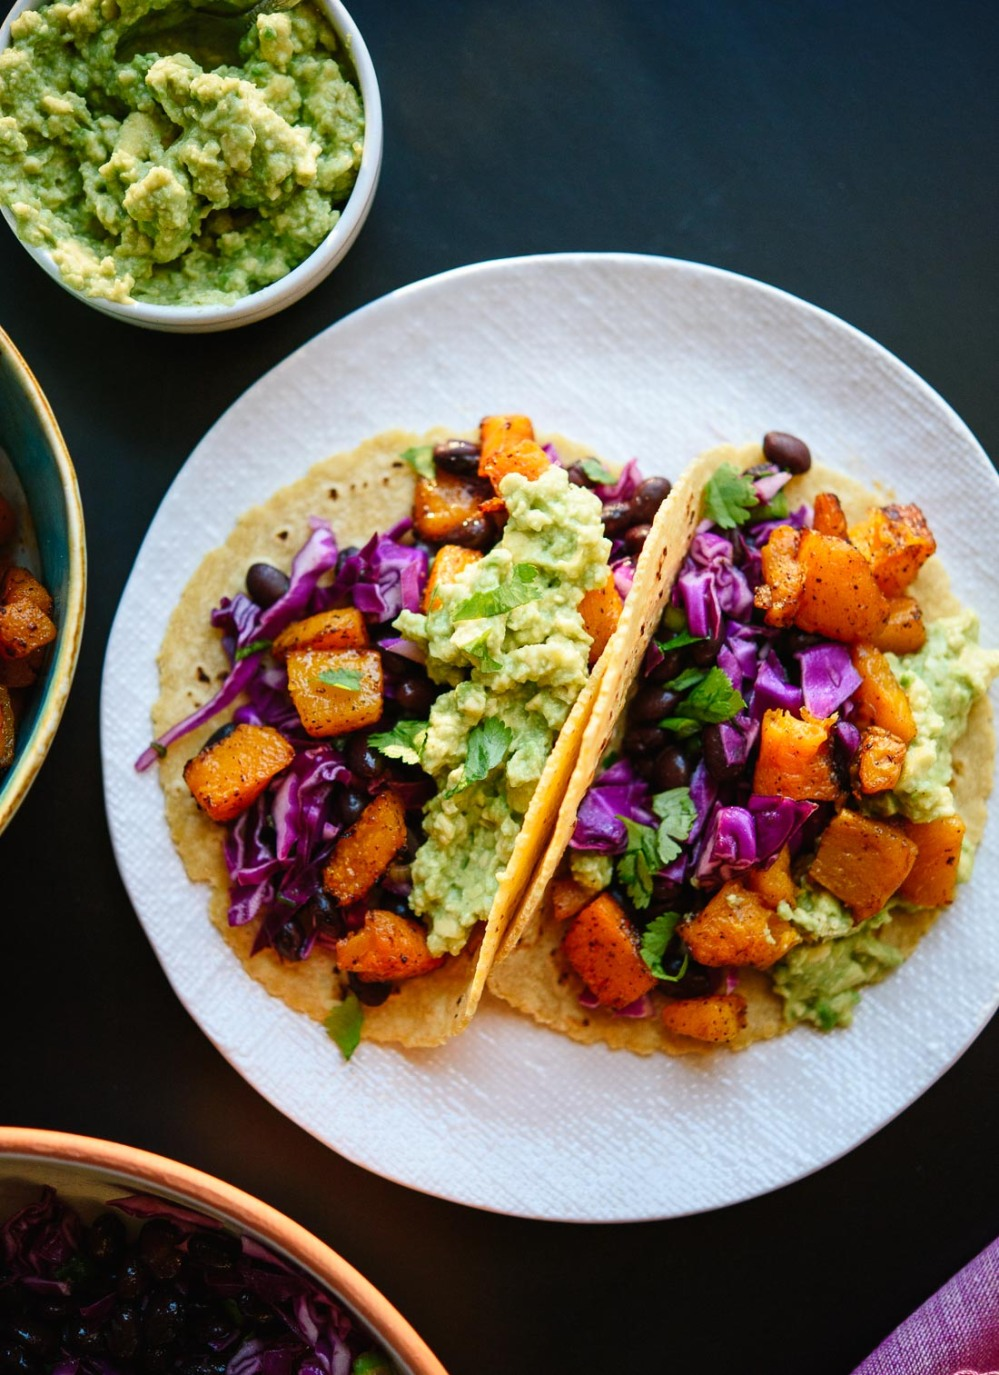 roasted-butternut-squash-tacos-with-slaw.jpg